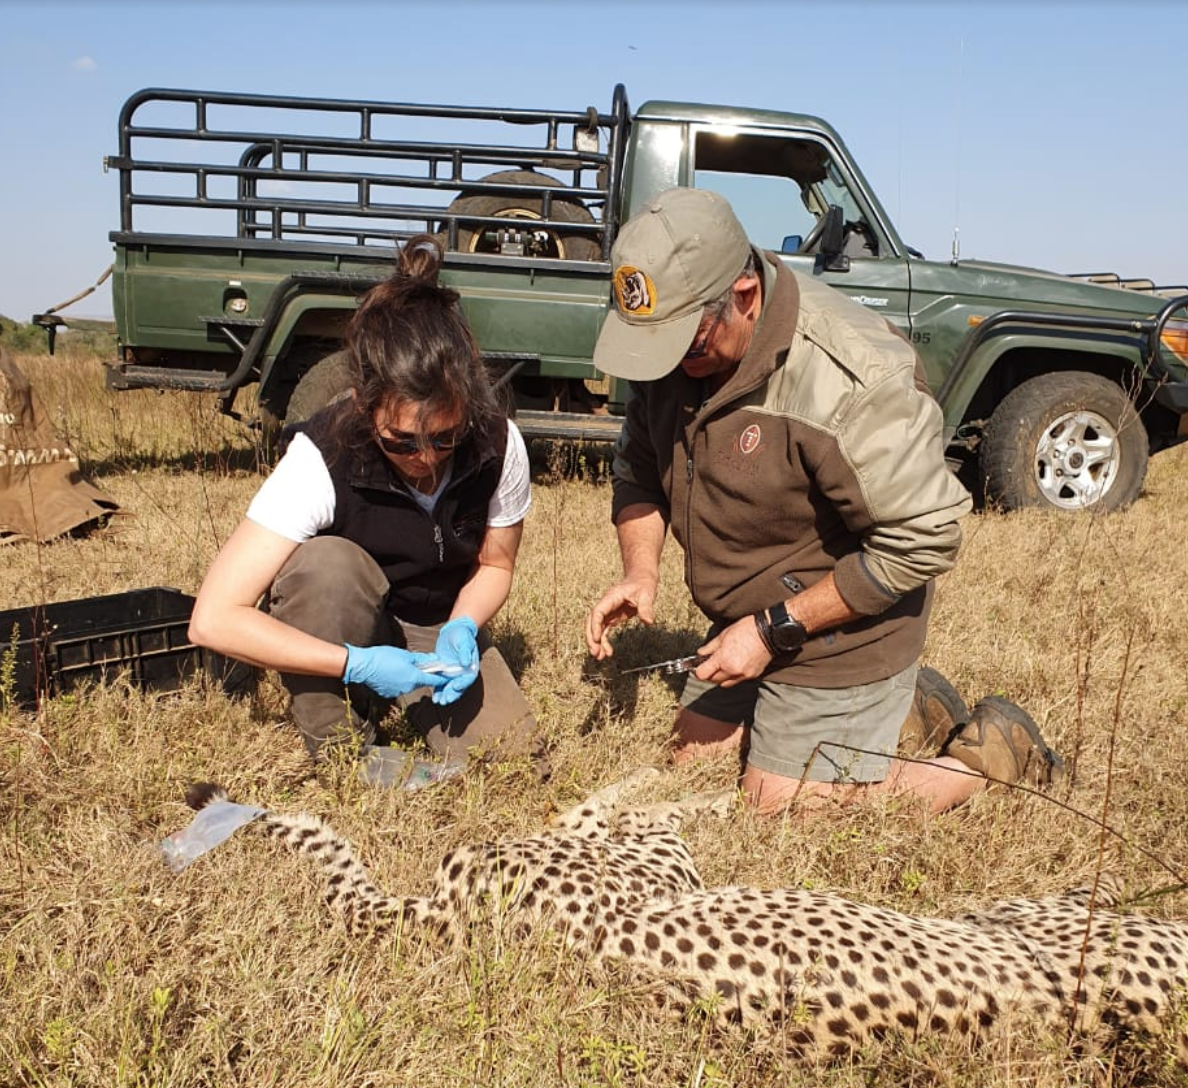 Researcher Elin Crockett collects blood samples alongside Dr. Mike Toft, local Wildlife Veterinarian, from an anesthetized cheetah at Phinda Private Game Reserve.